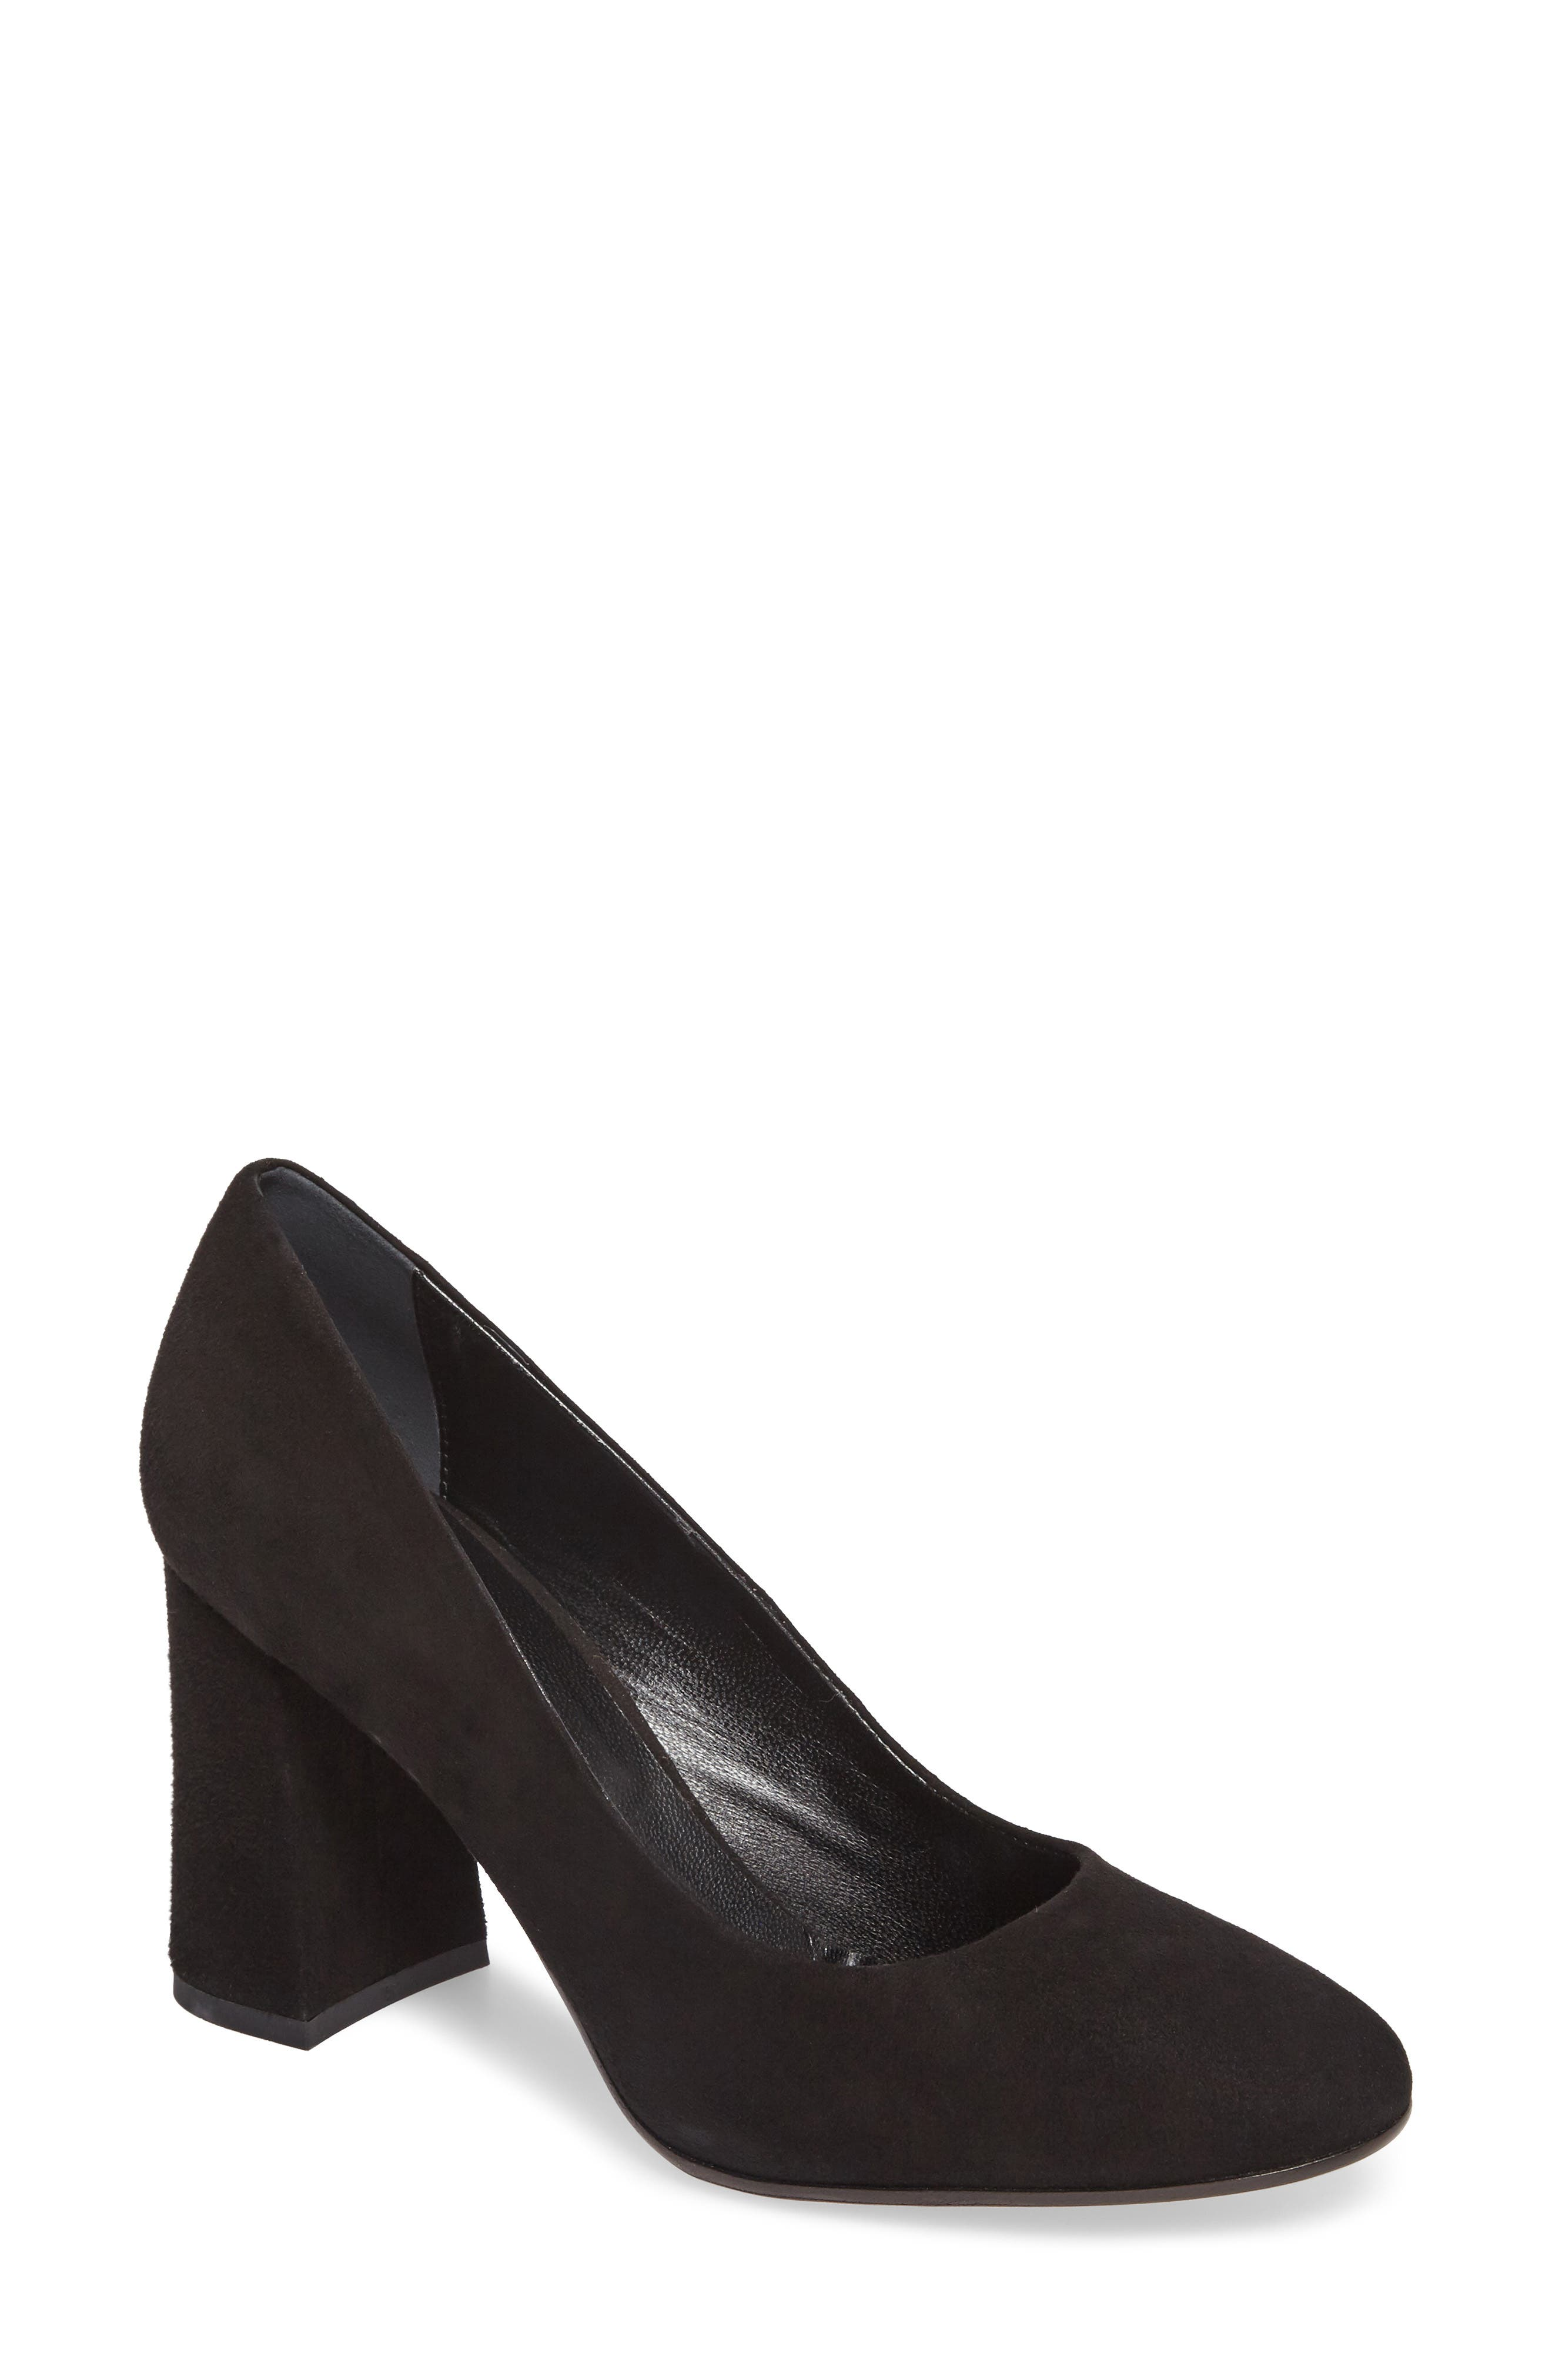 Hanette Pump,                             Main thumbnail 1, color,                             BLACK SUEDE